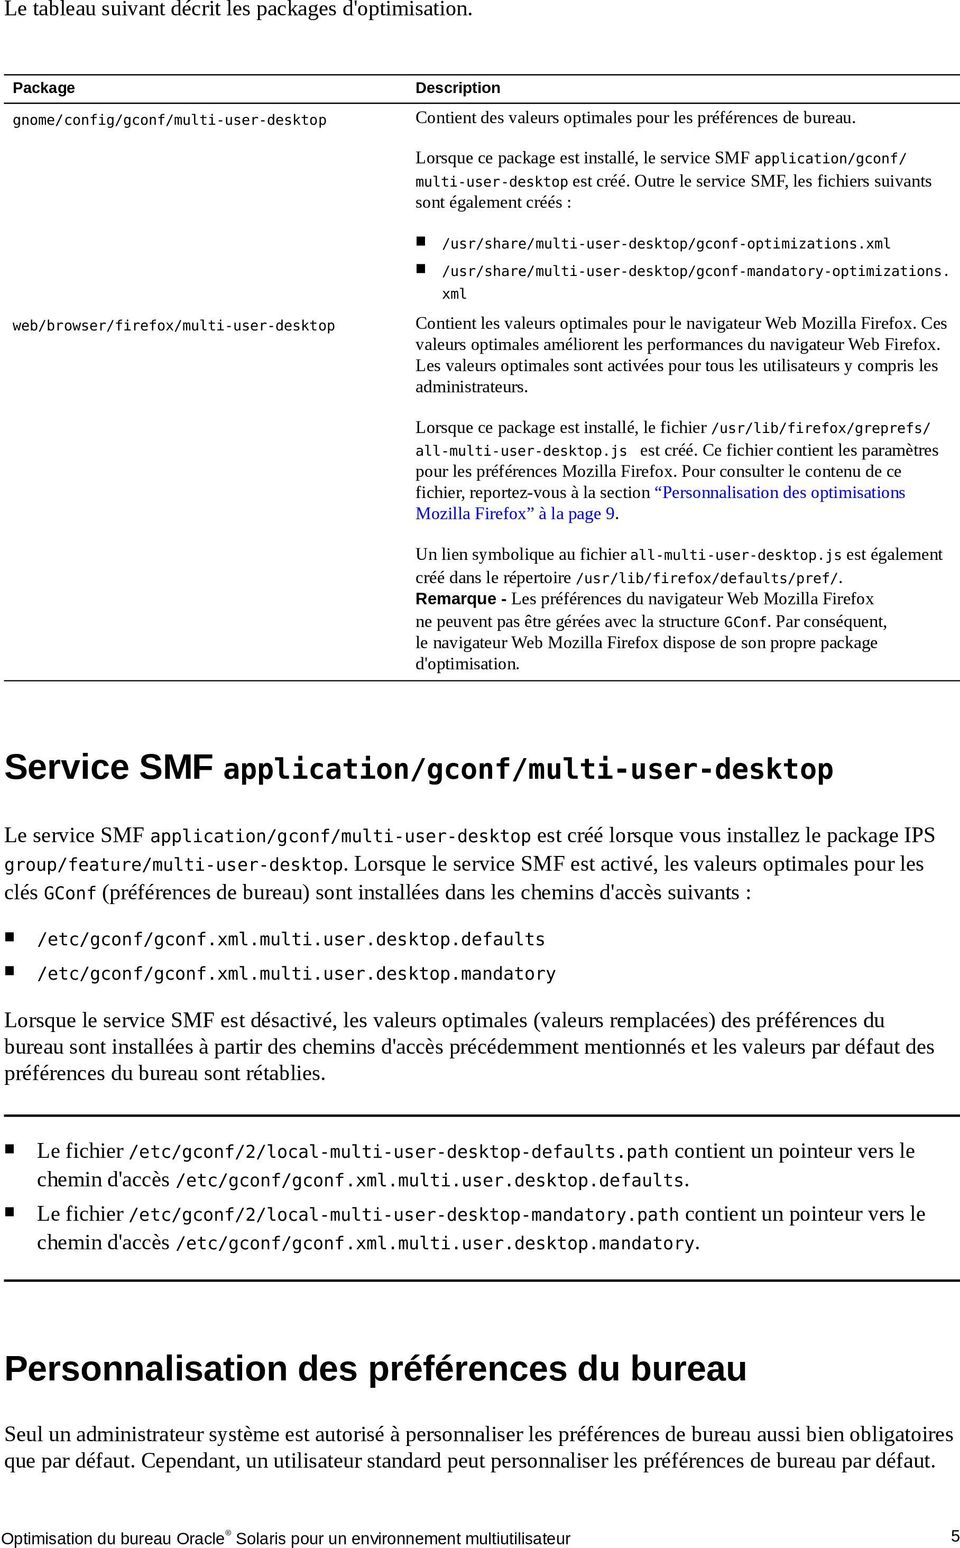 Outre le service SMF, les fichiers suivants sont également créés : web/browser/firefox/multi-user-desktop /usr/share/multi-user-desktop/gconf-optimizations.